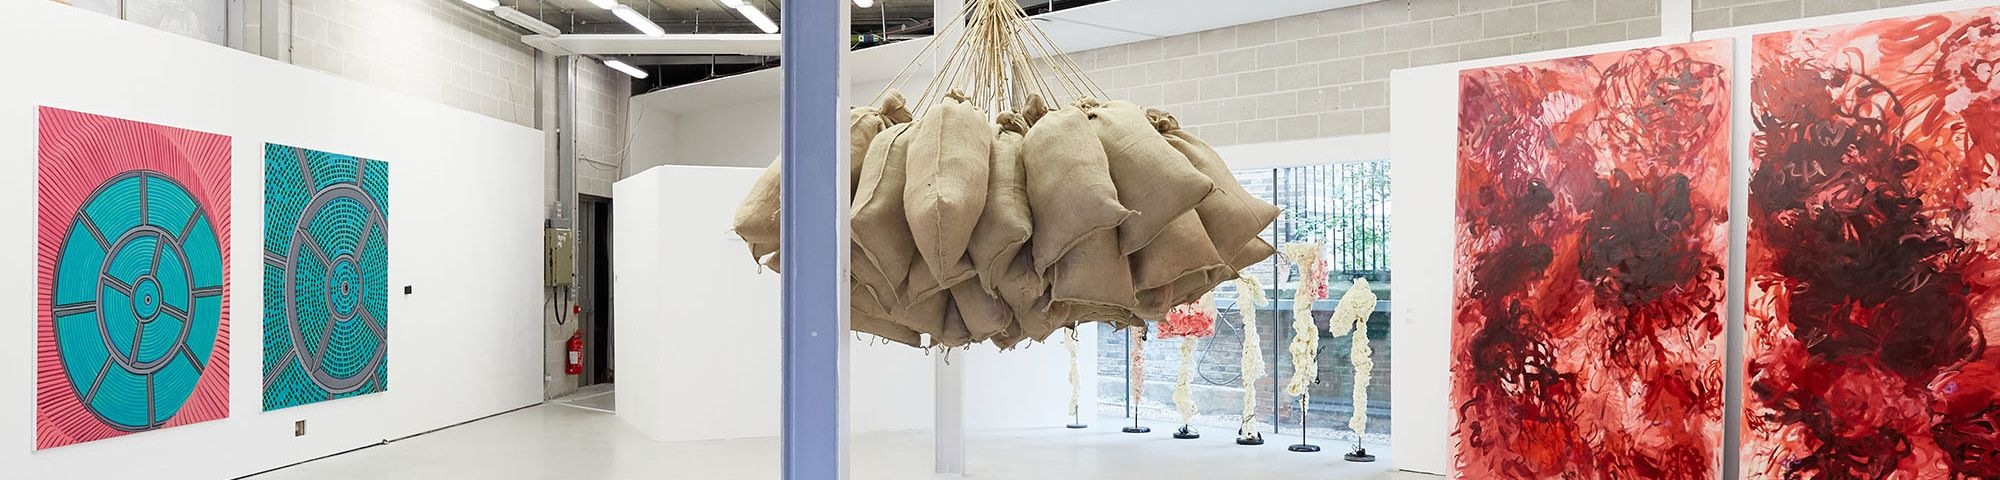 Two sets of paintings and a sculpture of hanging sacks from the ceiling as part of the MA Fine Art Summer Show